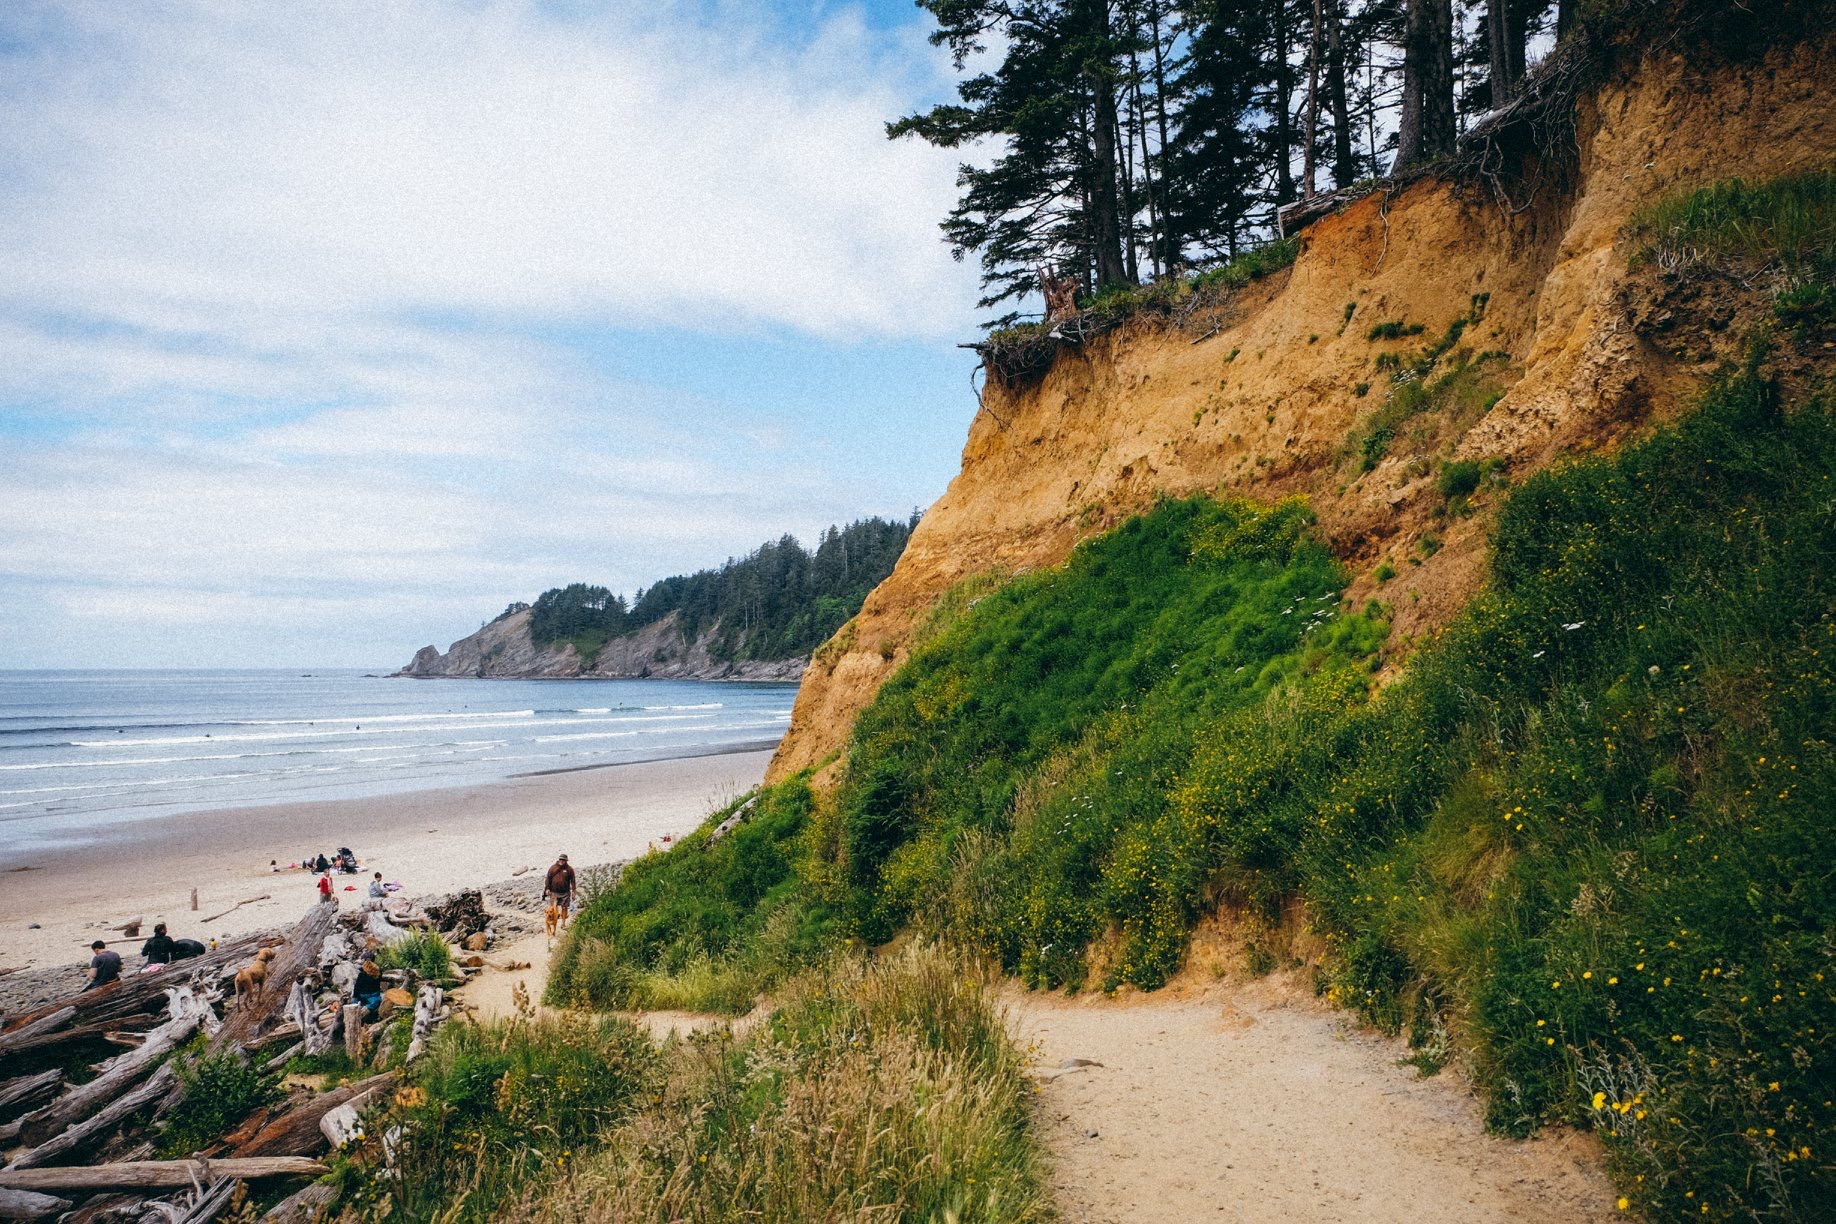 things to do in portland - portland travel guide - exploring oregon's coast